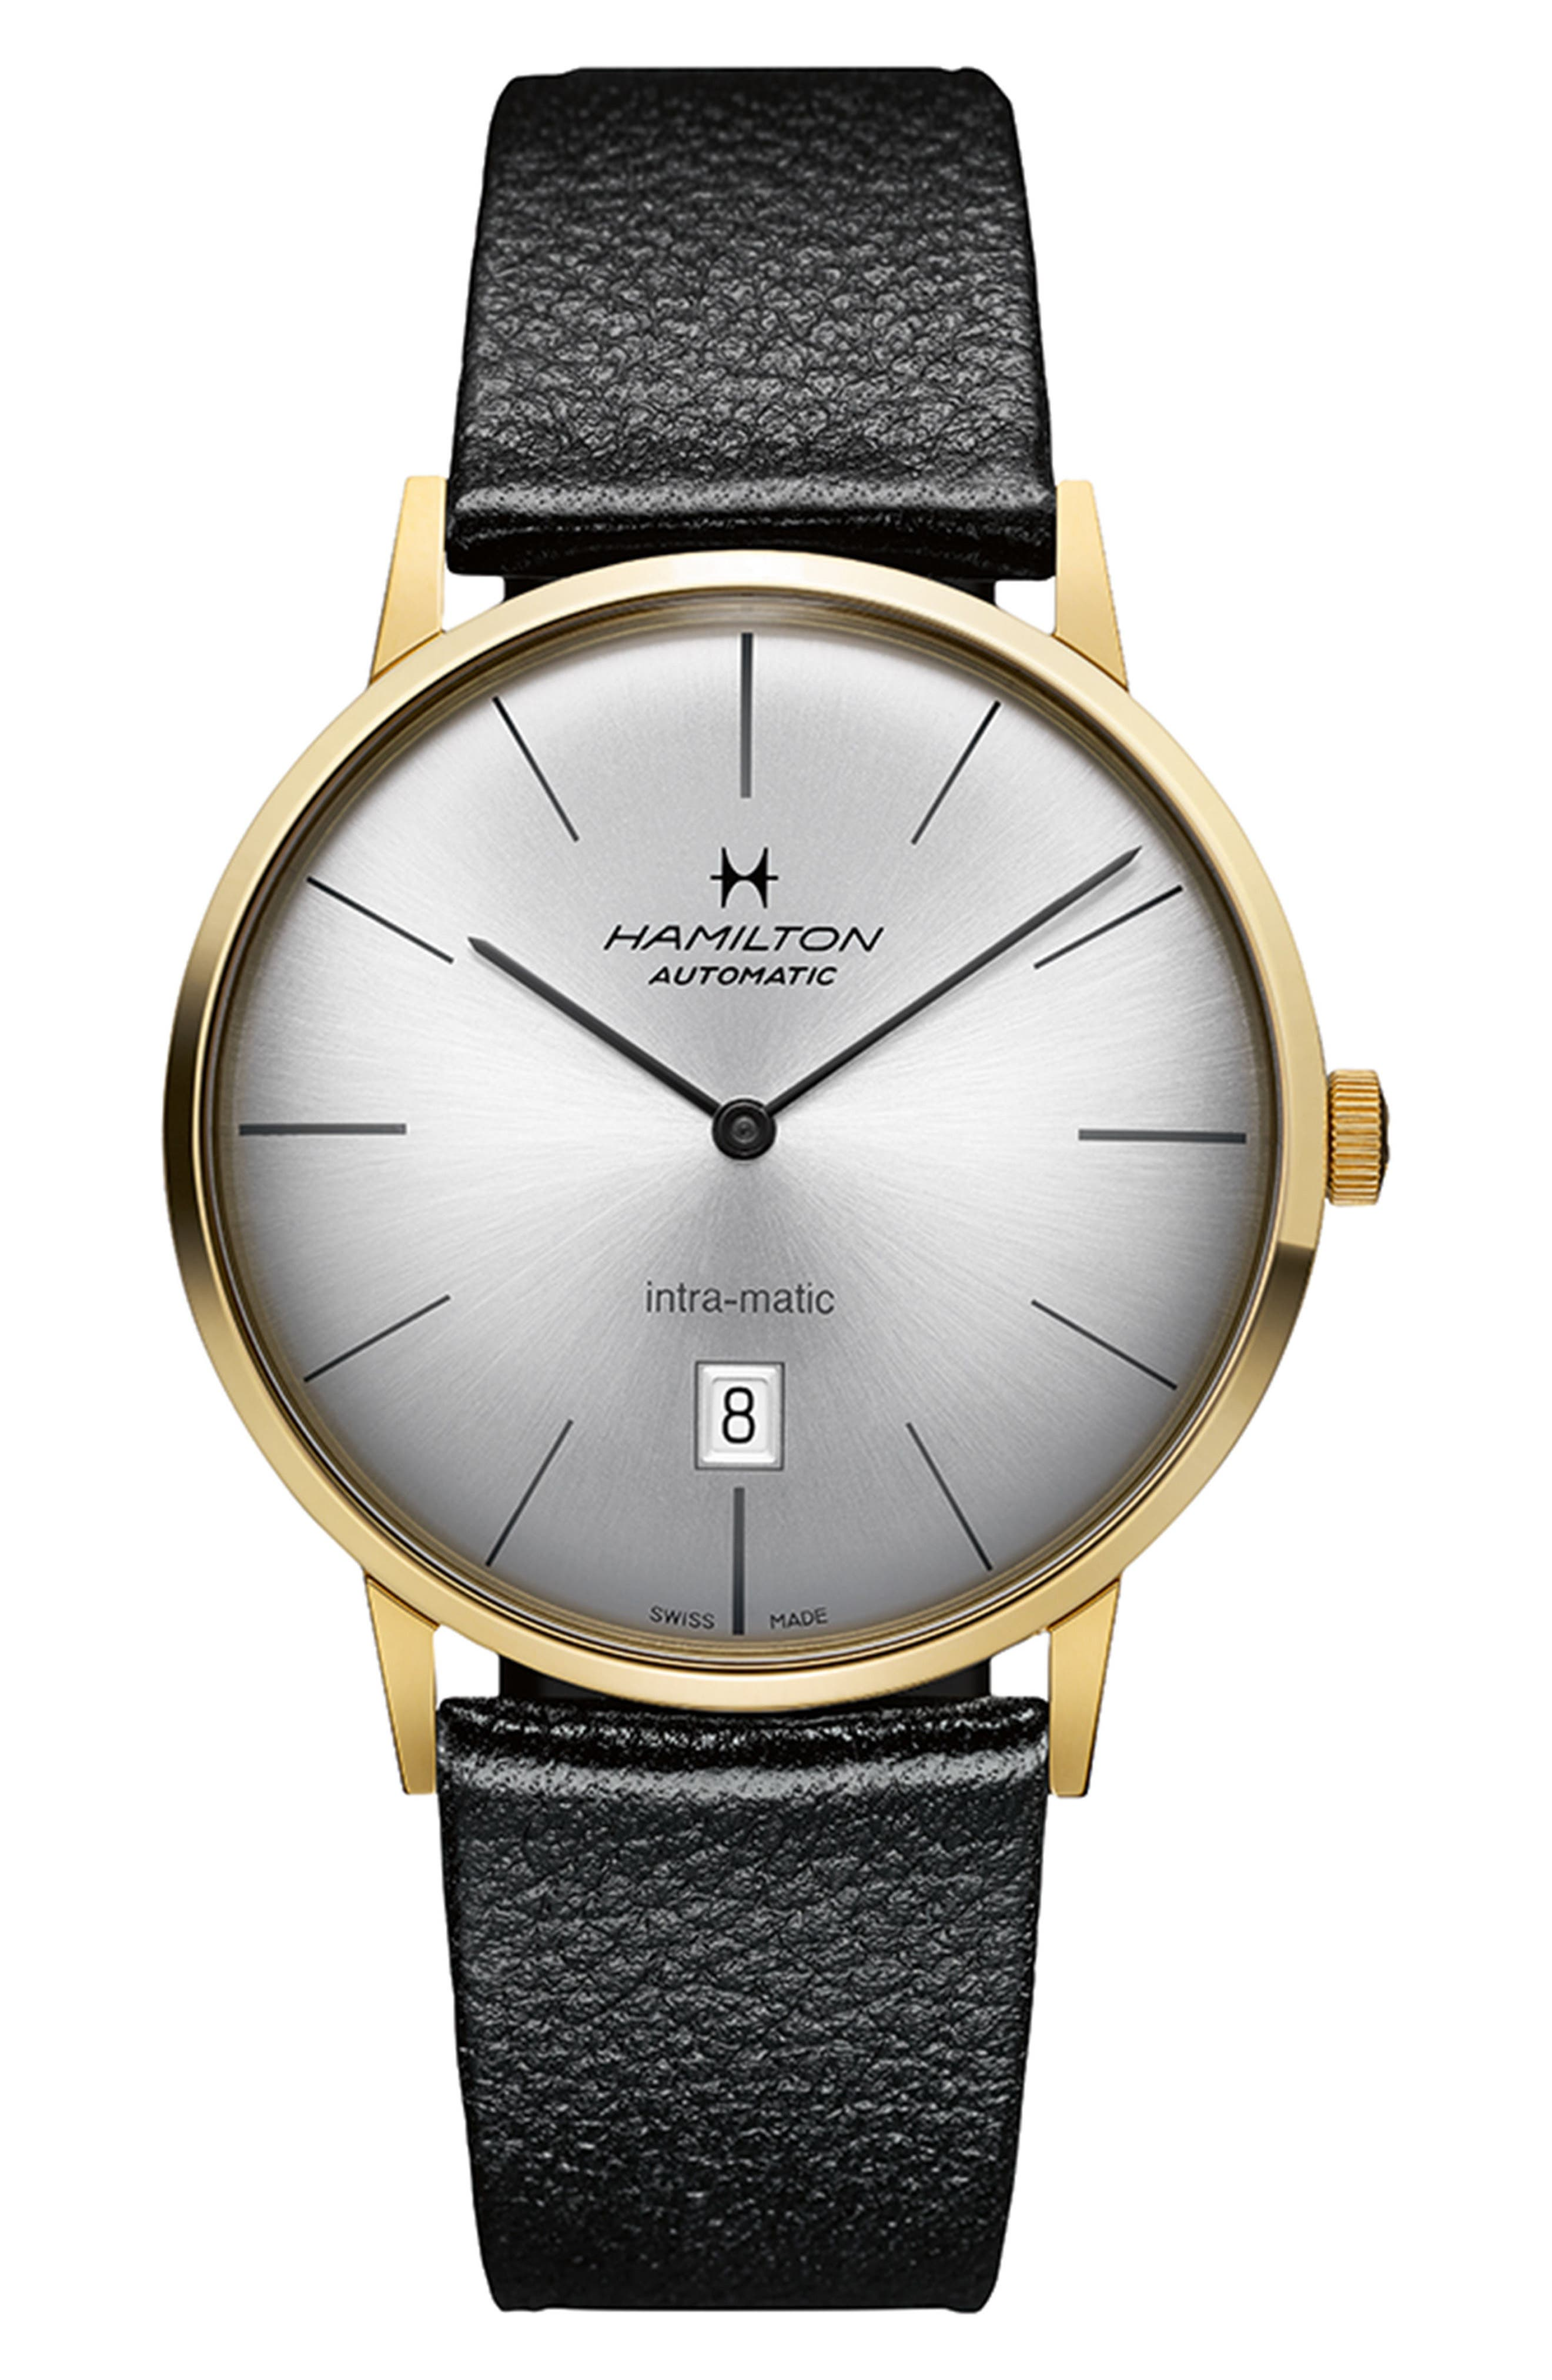 HAMILTON Intra-Matic Automatic Leather Strap Watch, 42mm, Main, color, BLACK/ SILVER/ GOLD